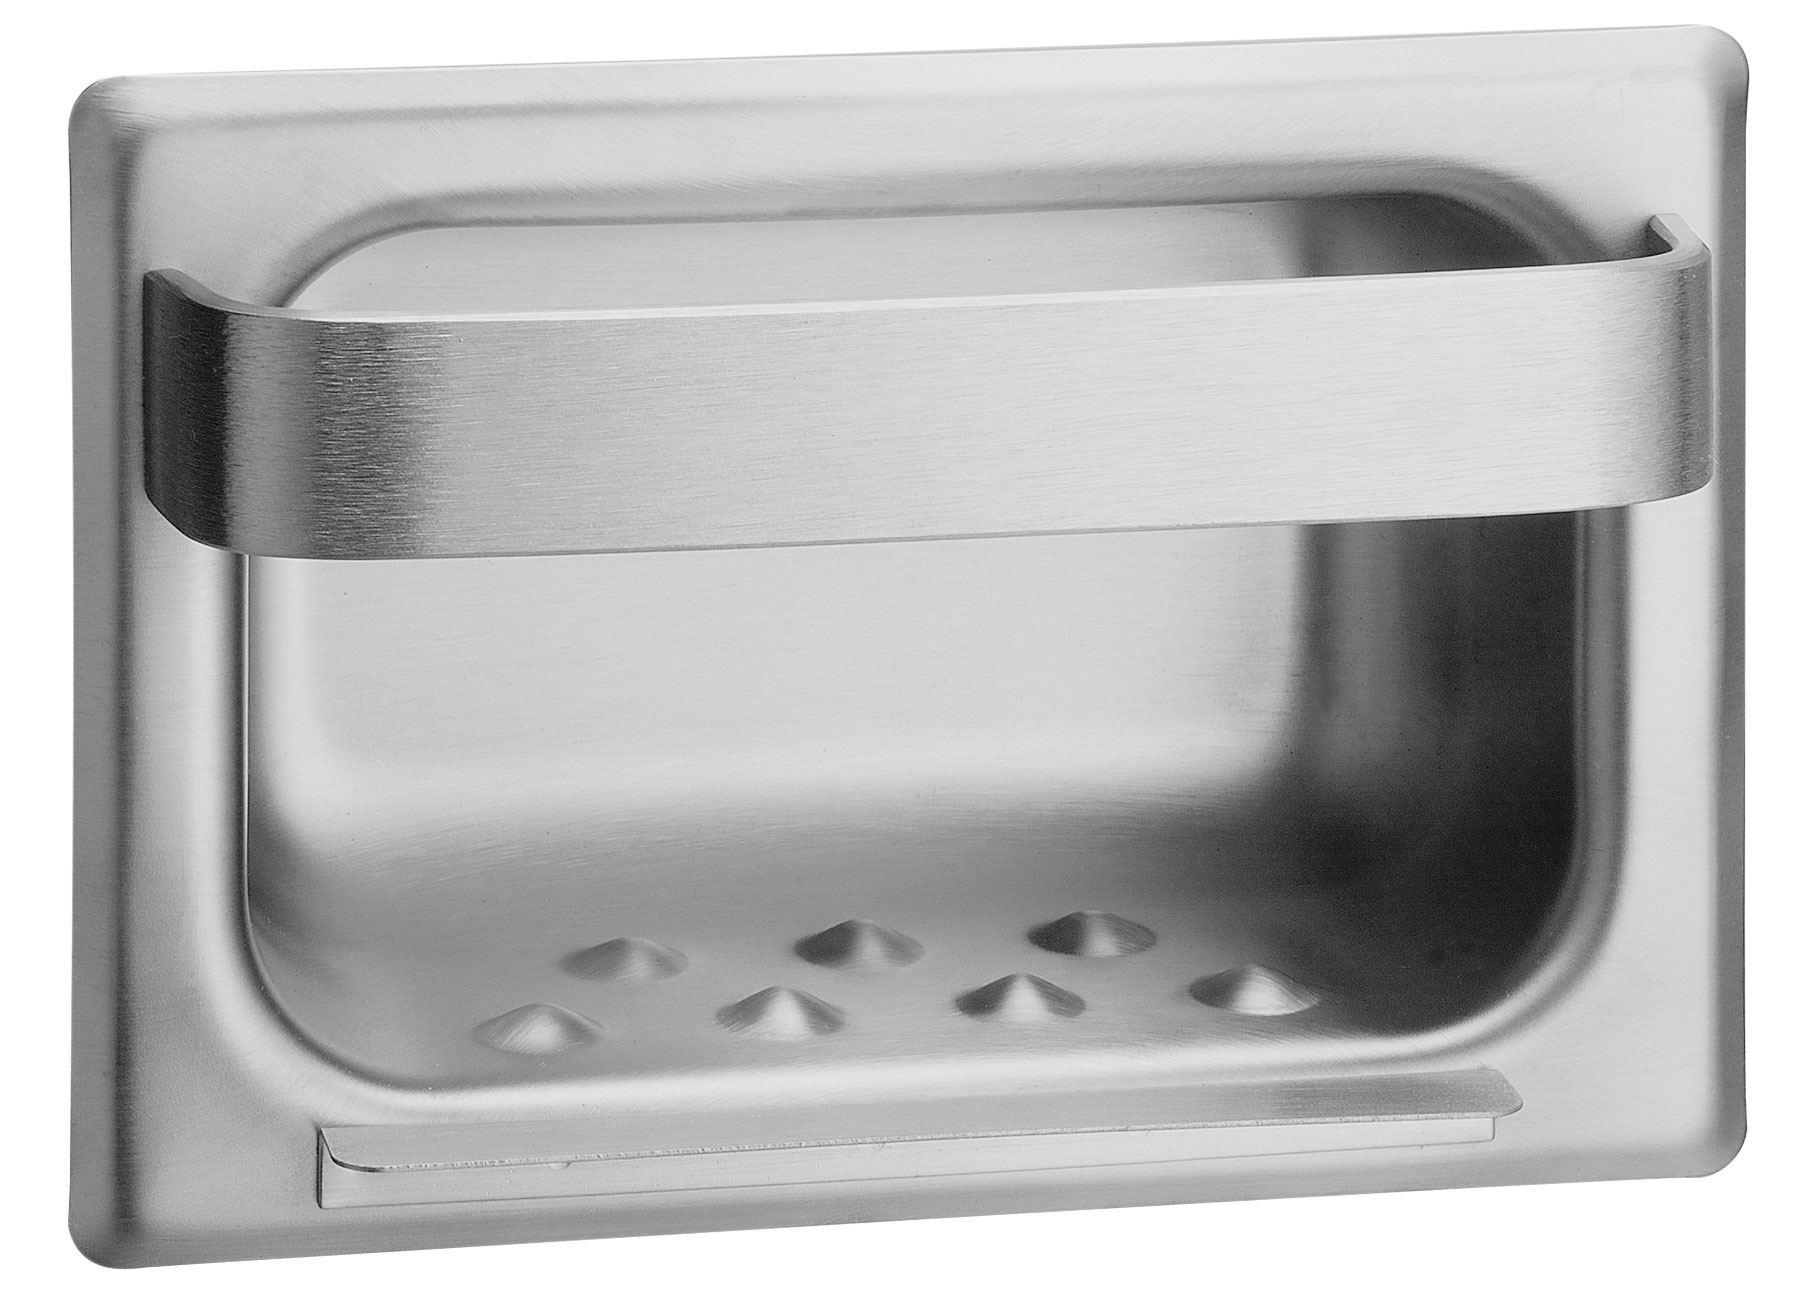 Bradley 9402 Stainless Steel Recessed Soap Dish & Towel Bar - w/ Wall Clamp